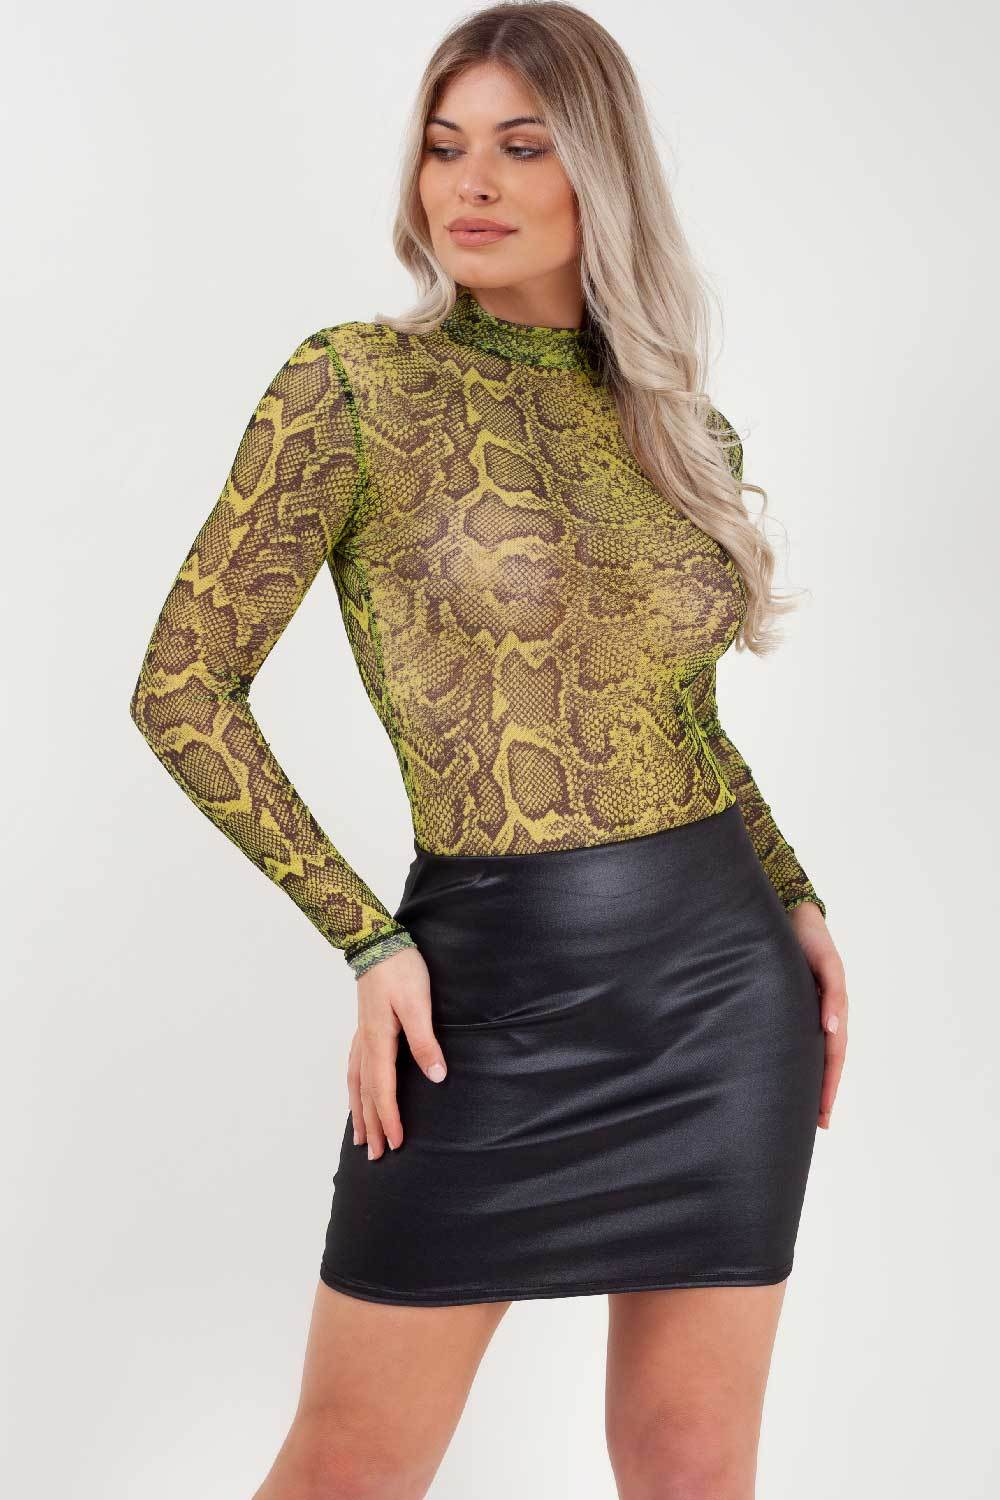 snake print bodysuit long sleeve